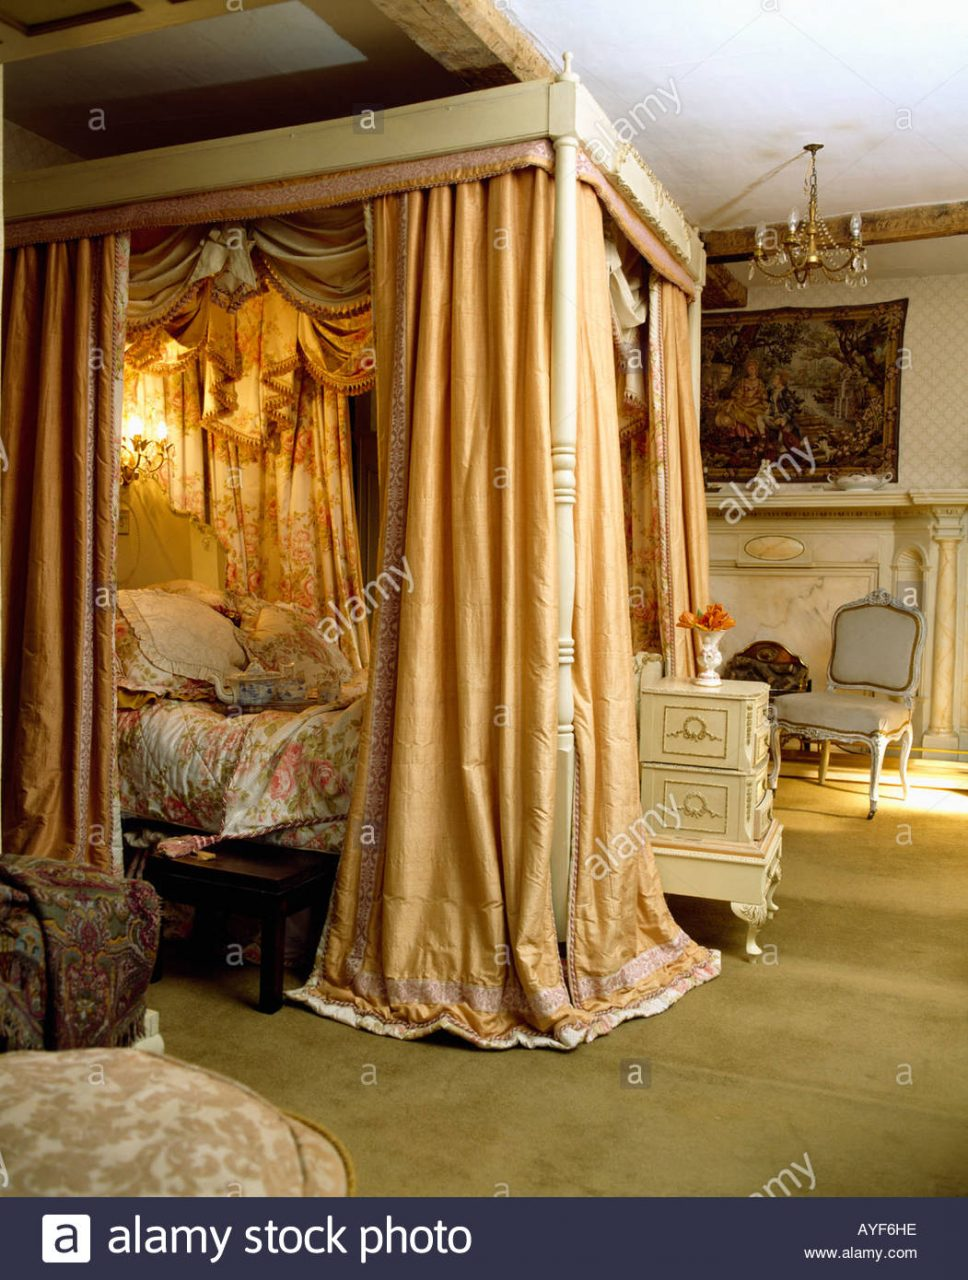 Four Poster Bed With Curtains Stock Photos Four Poster Bed With